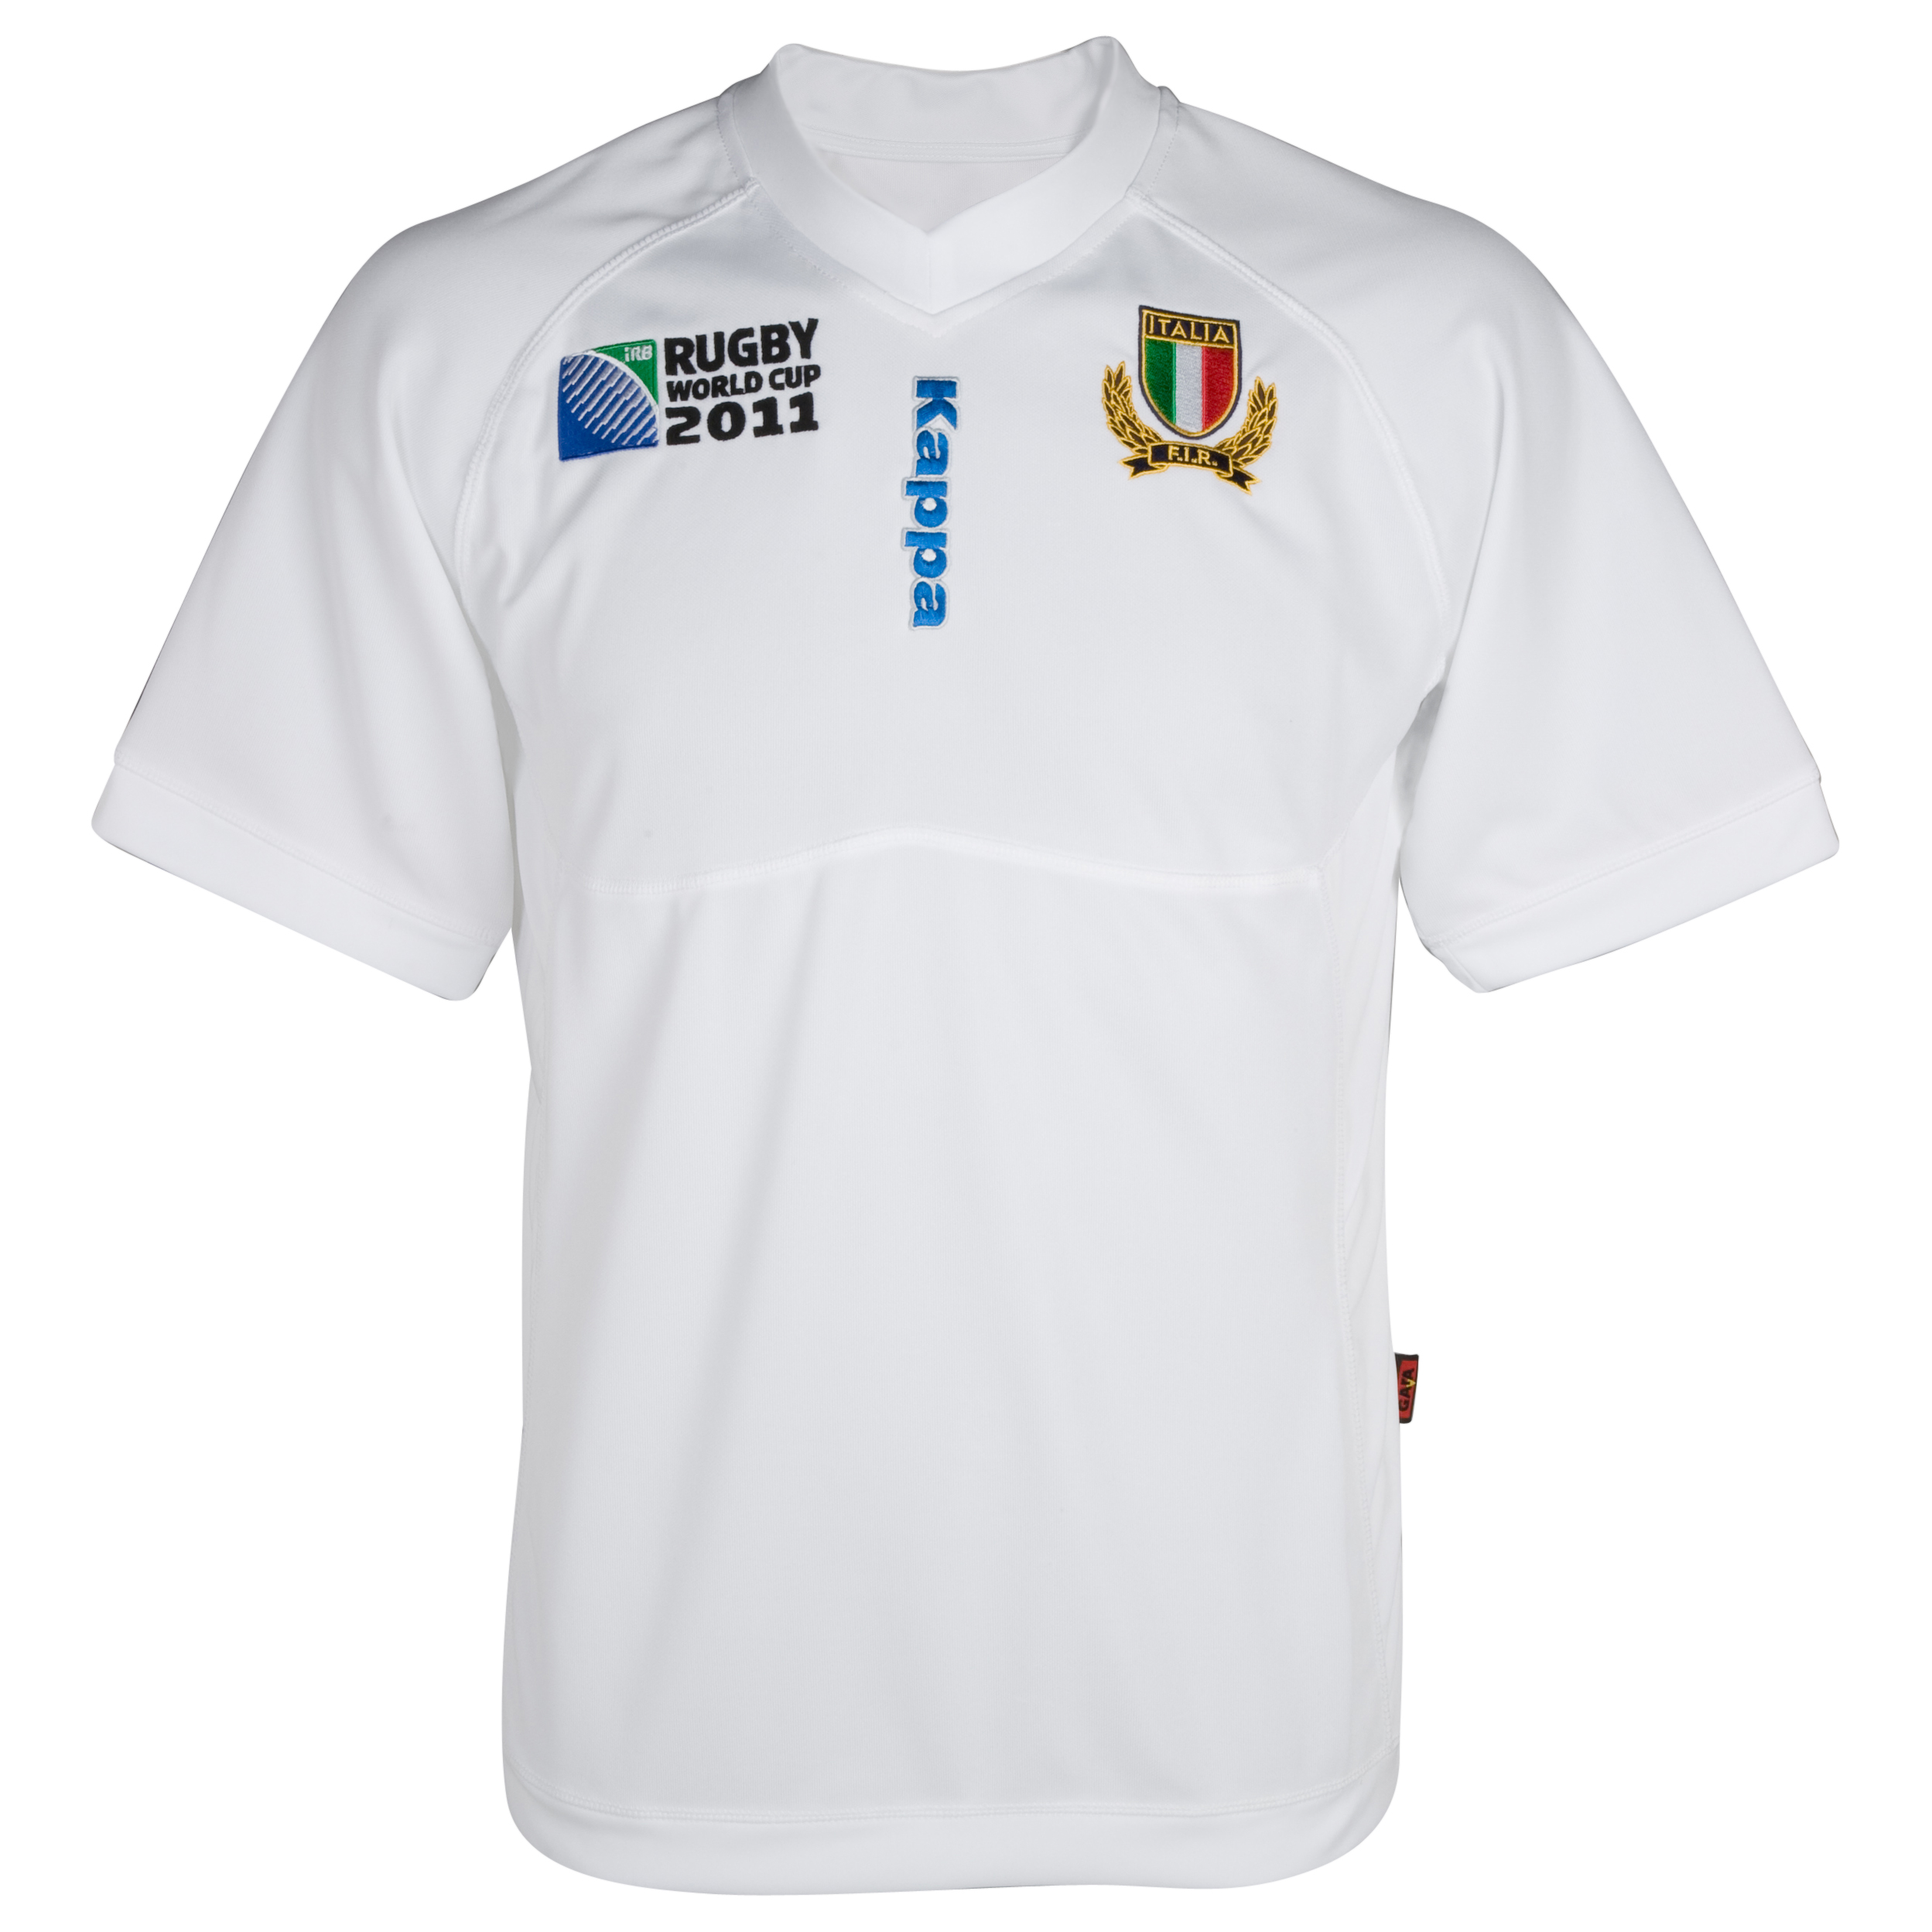 Italy Rugby World Cup Supporters Away Shirt 2011/12 - Kids - White. for 10€